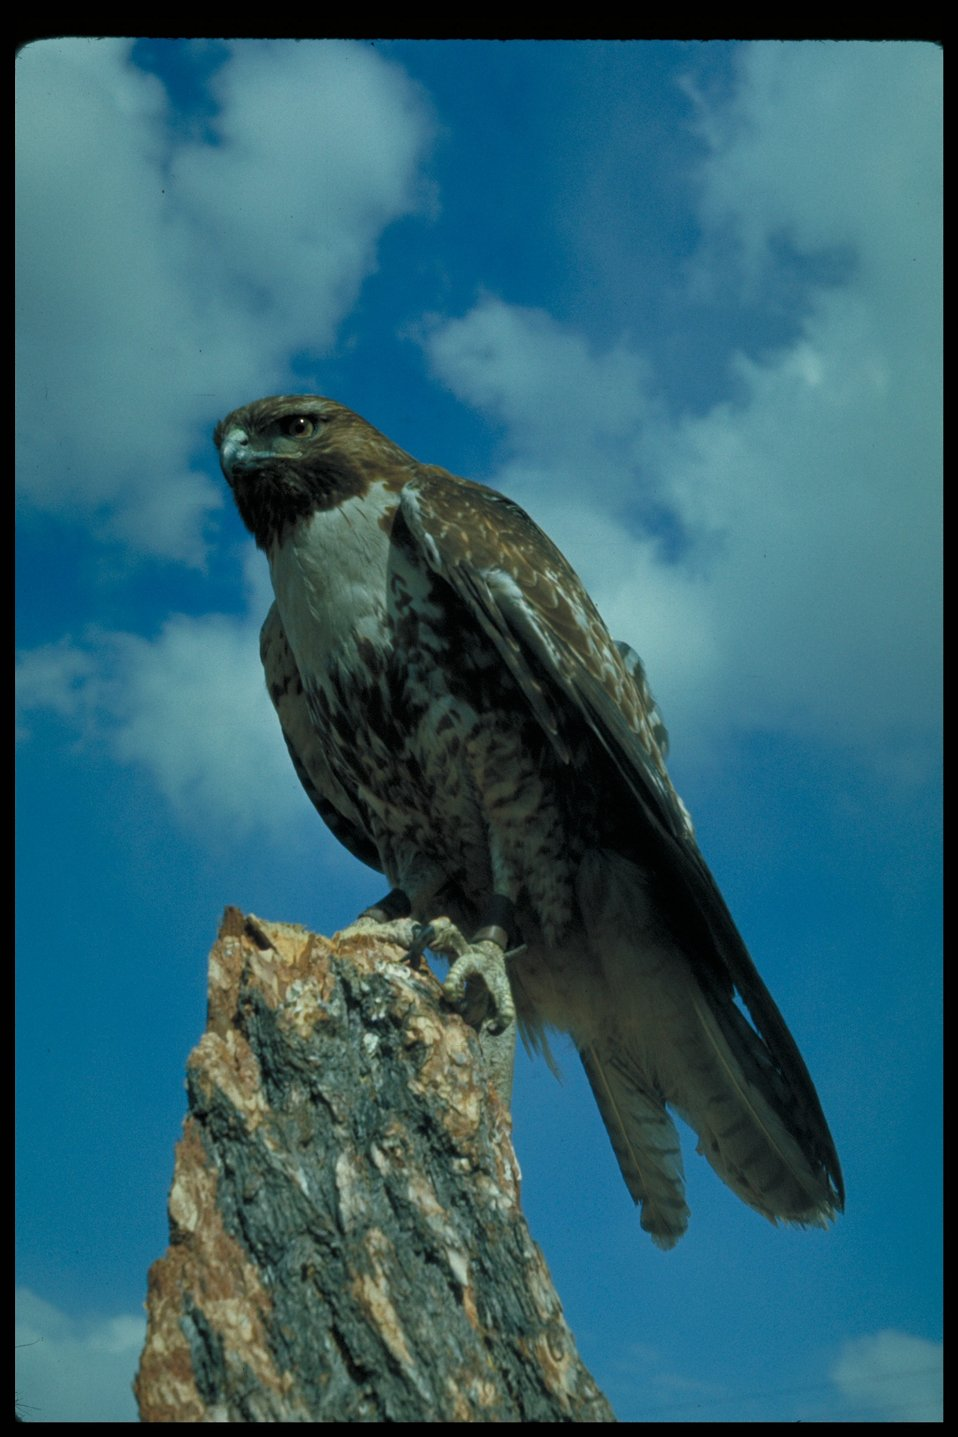 Red-Tailed Hawk  Birds of Prey National Conservation Area  BOP  Owyhee Field Office  LSRD  Lower Snake River District